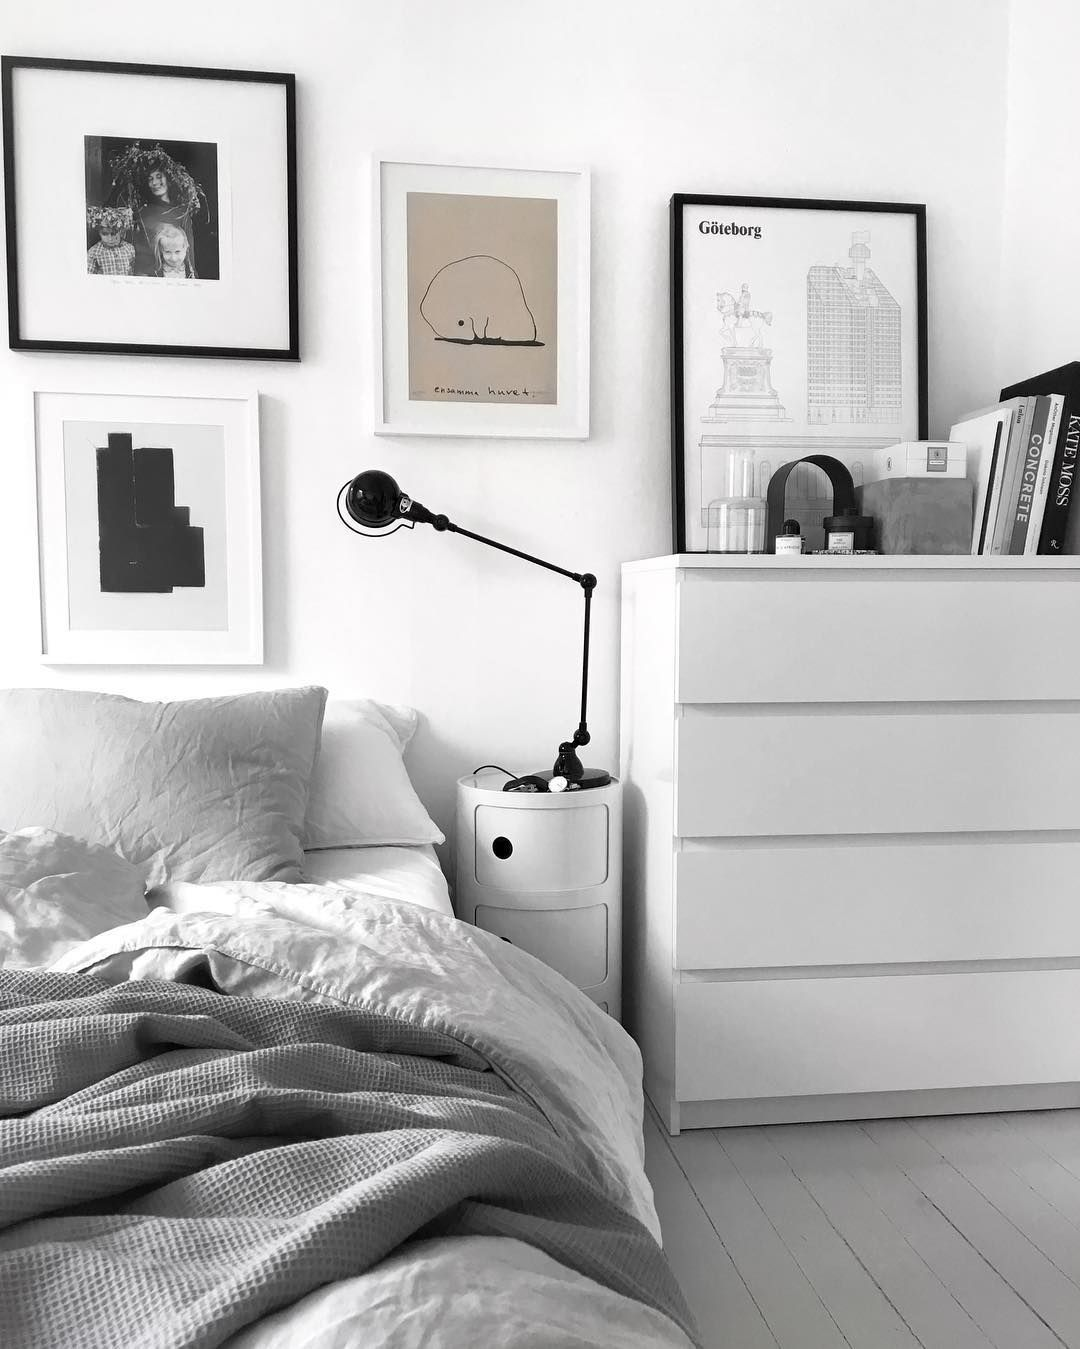 ikea schlafzimmer grau m belideen. Black Bedroom Furniture Sets. Home Design Ideas